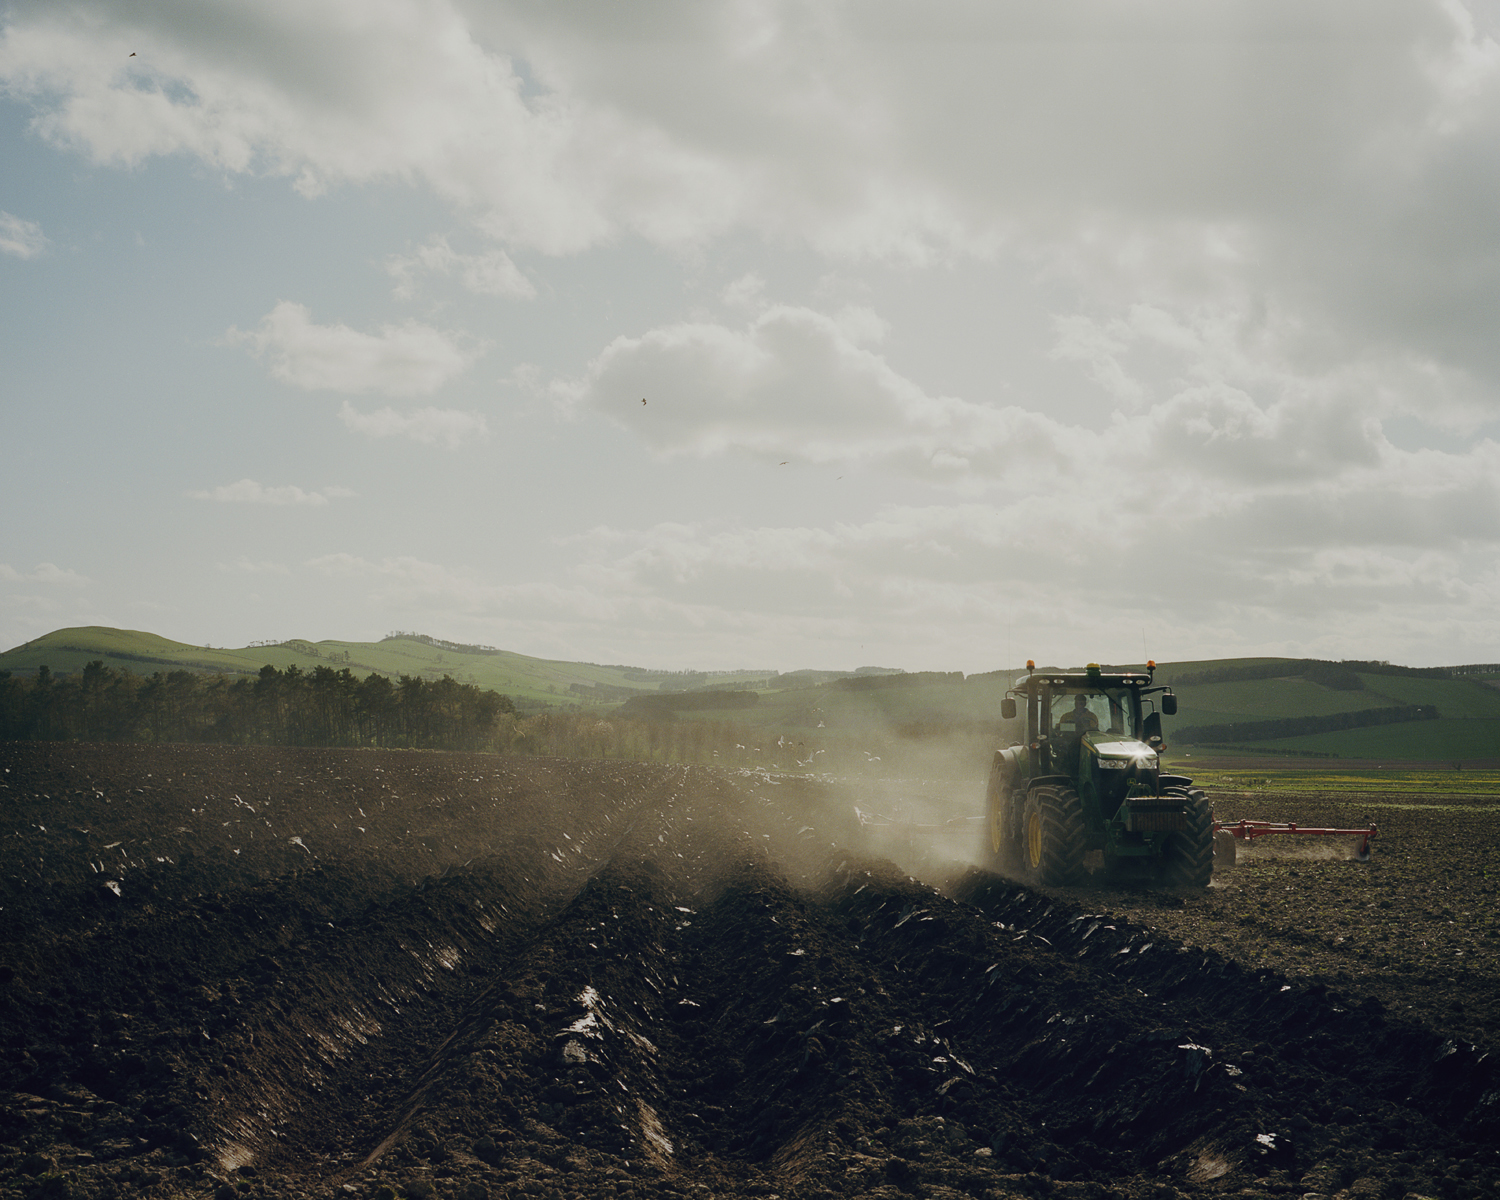 A farmer ploughing the land, Northumberland, England.